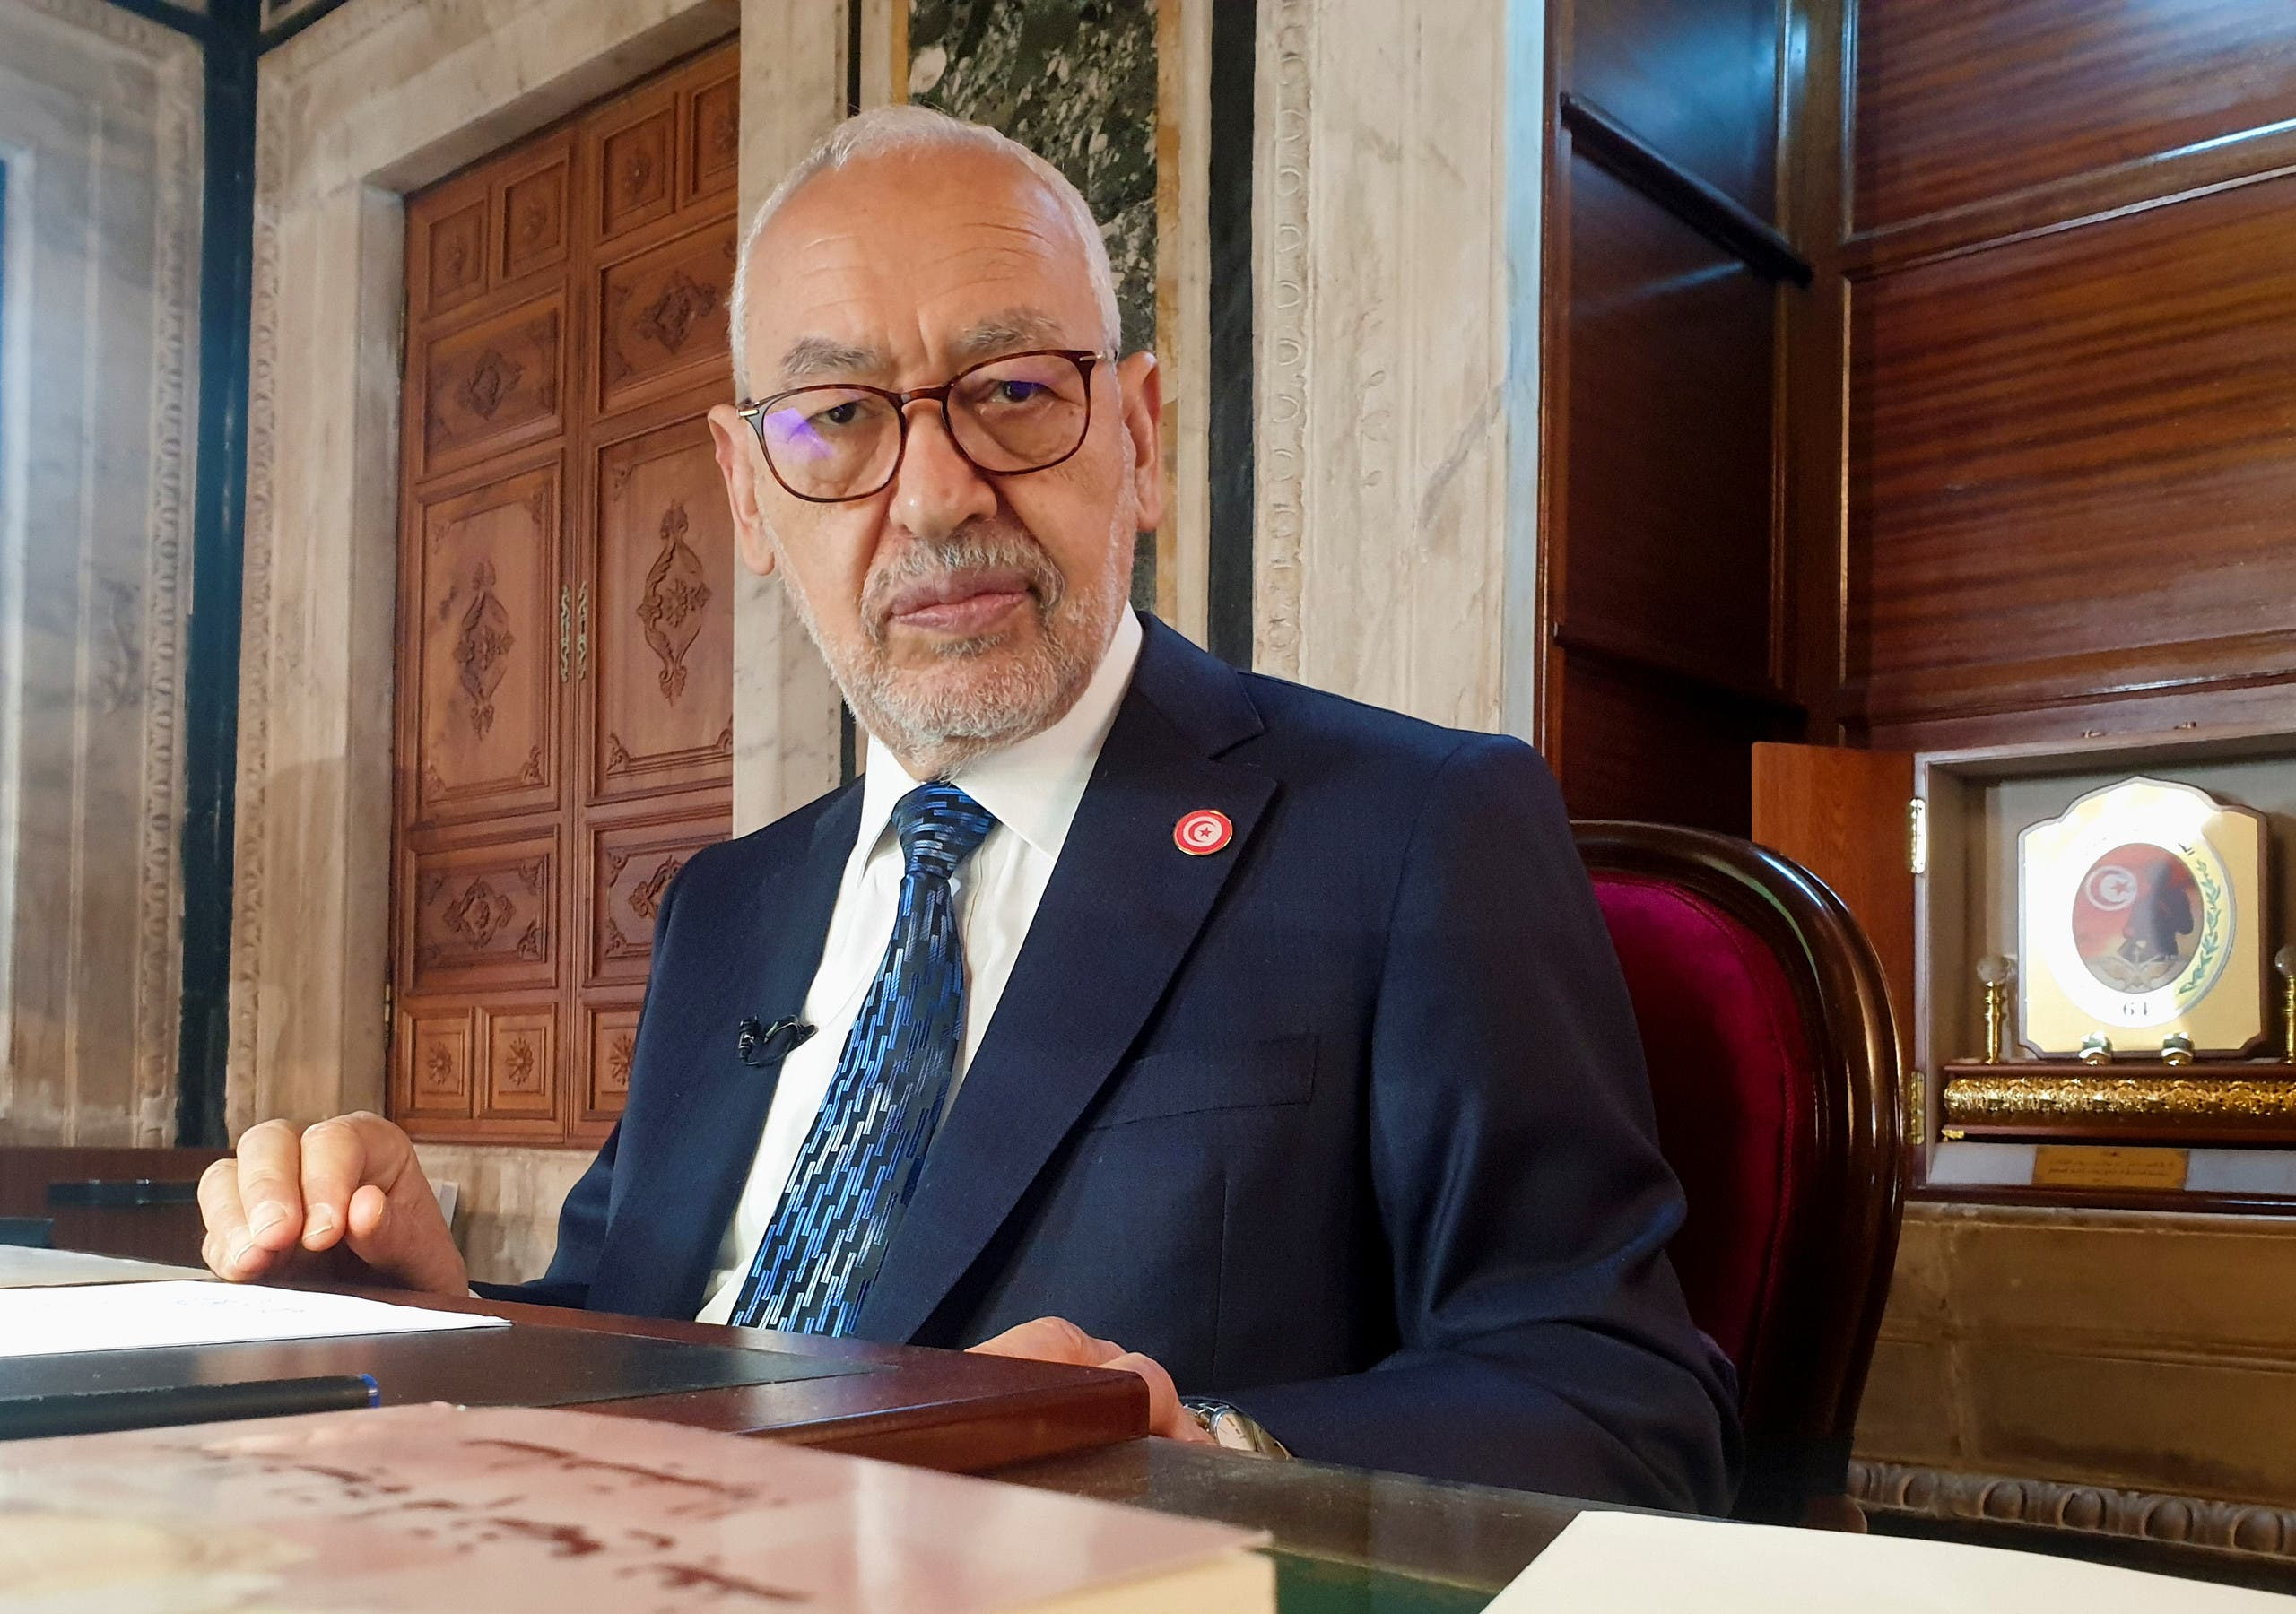 Parliament Speaker Rached Ghannouchi, head of the  Islamist Ennahda, poses during an interview with Reuters in his office, in Tunis, Tunisia, March 9, 2021. Picture taken March 9, 2021. (Reuters)